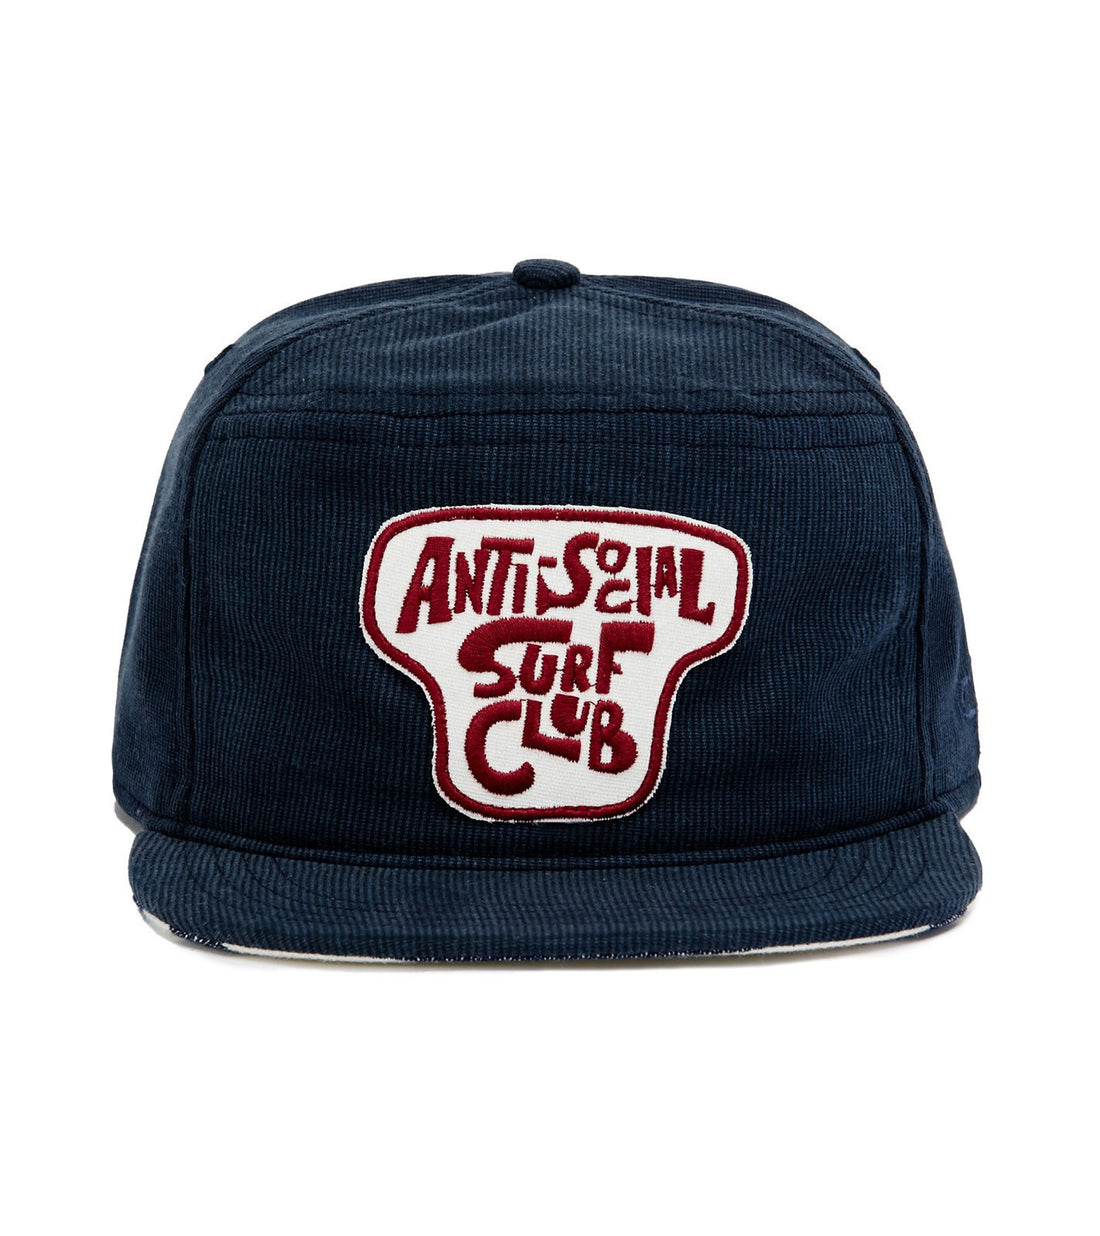 The Ampal Creative- AntiSocial Hat